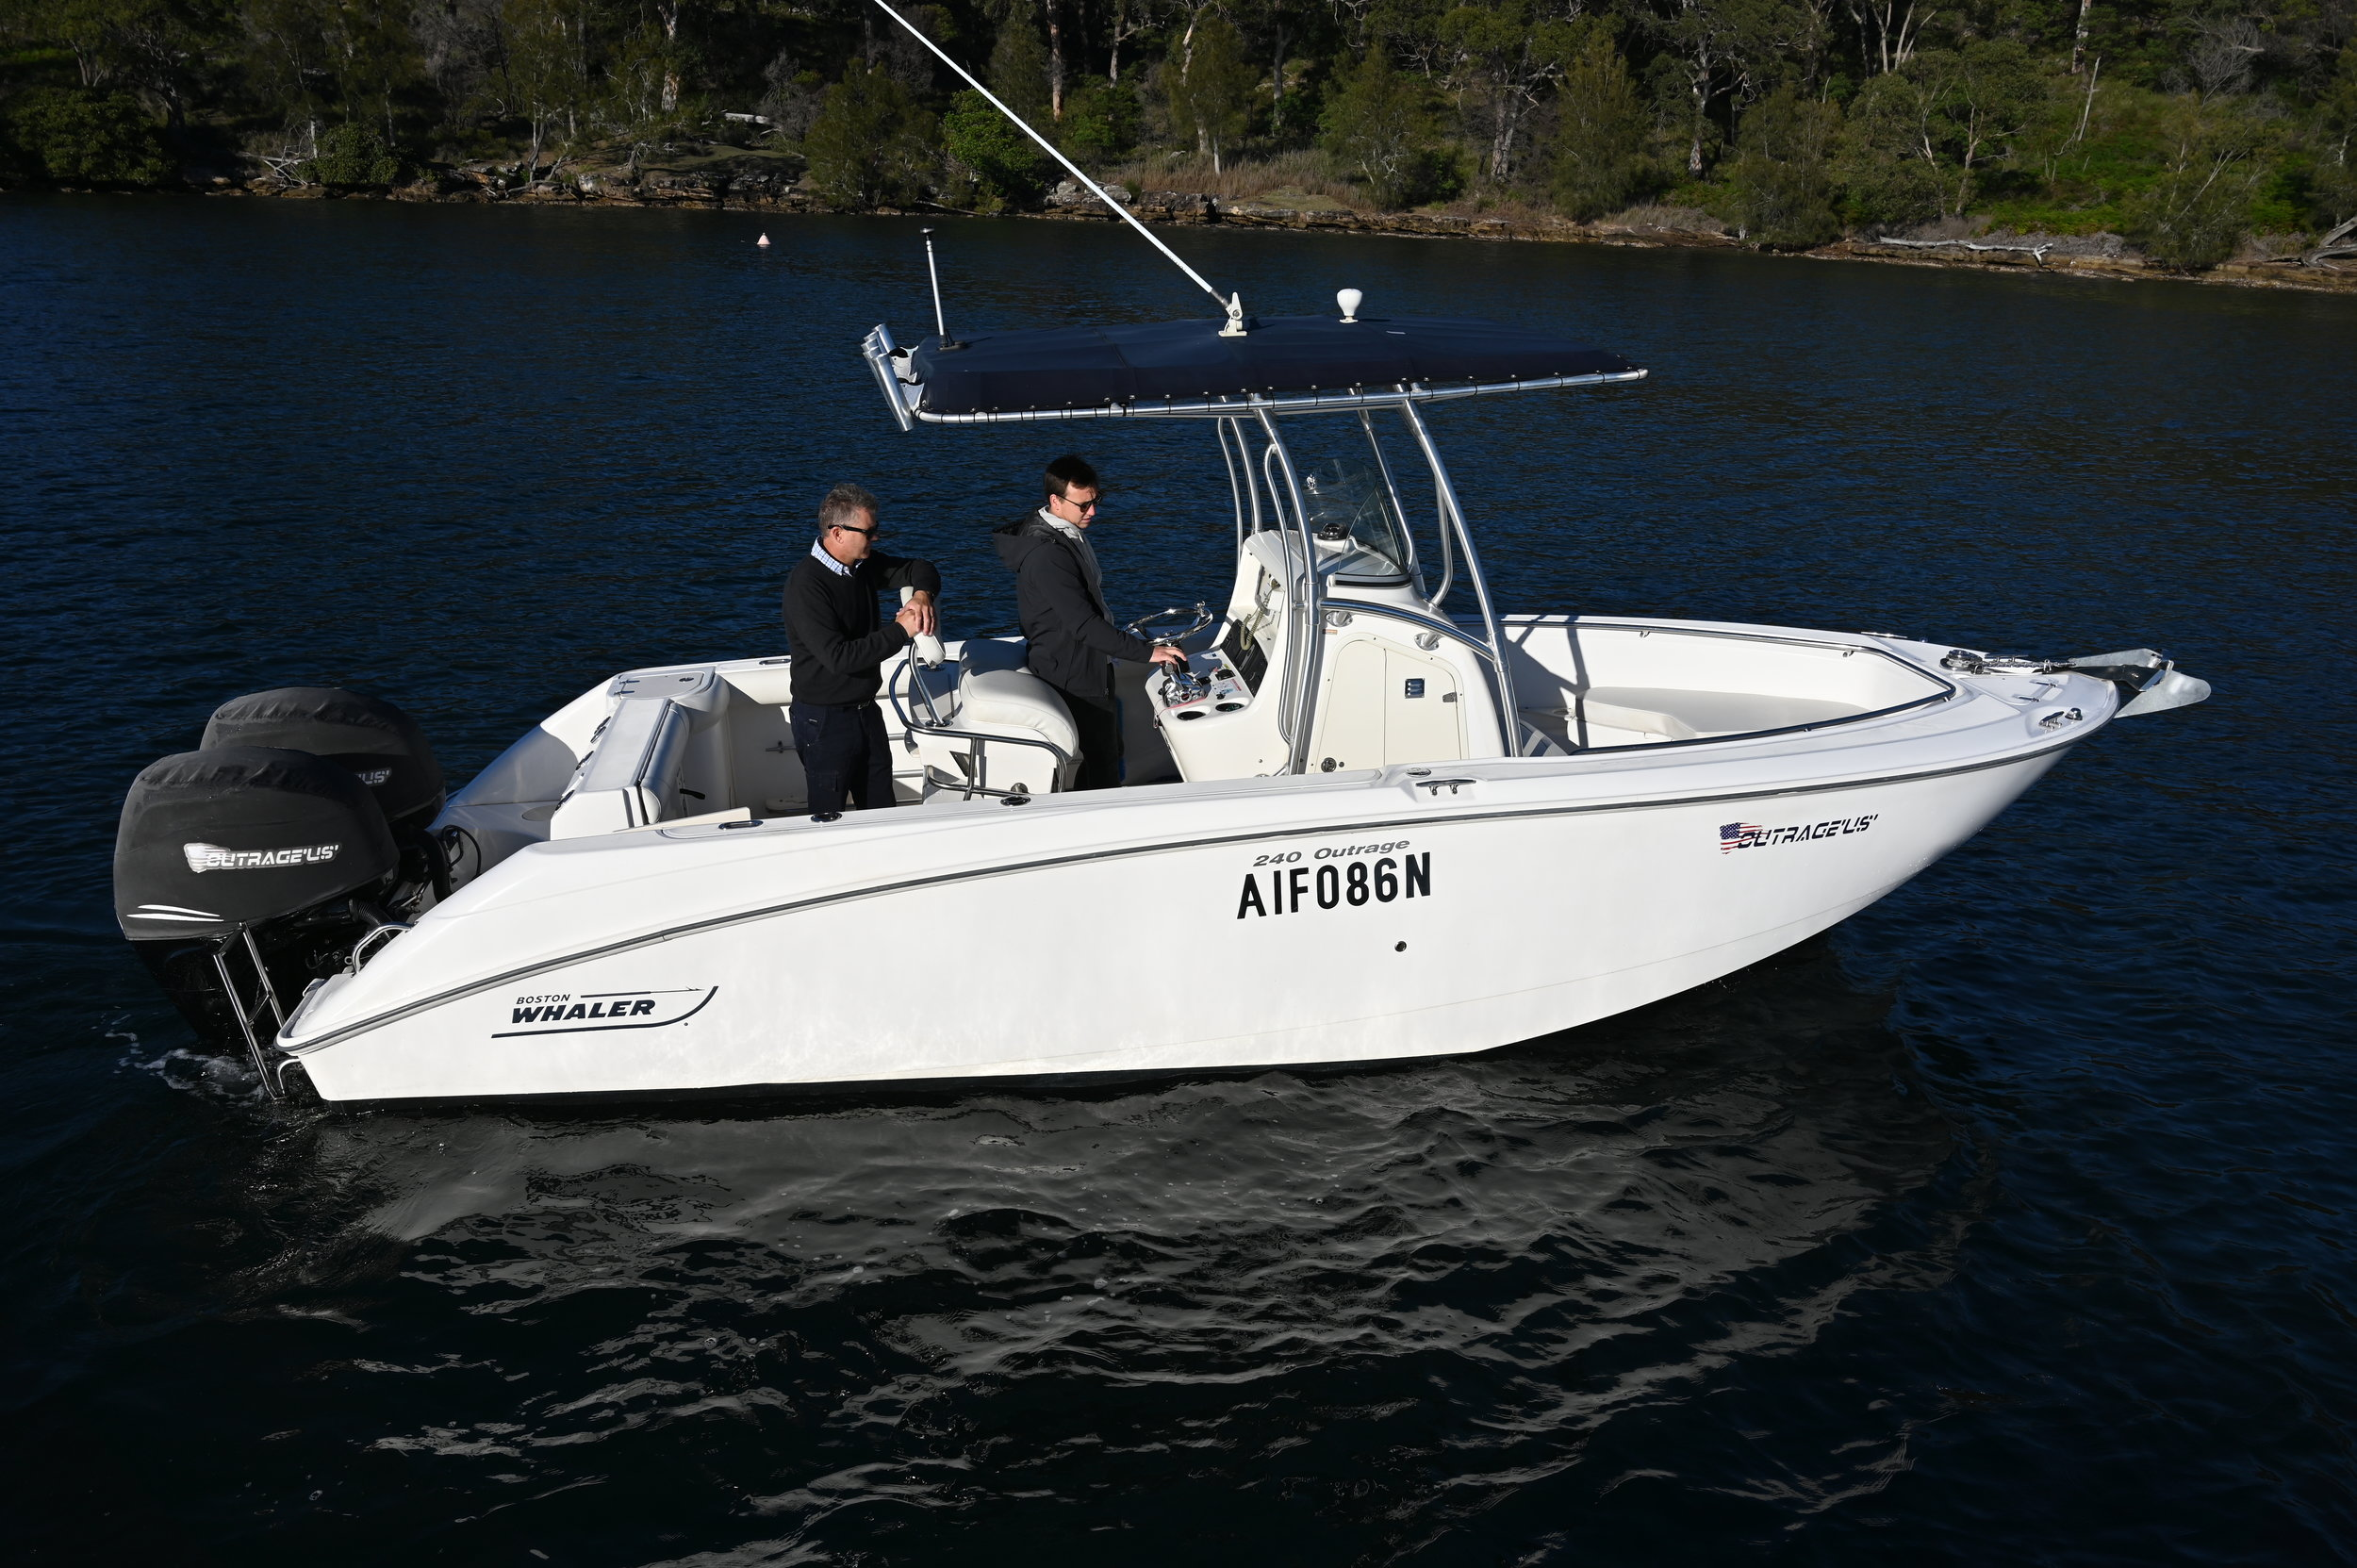 The perfect offshore fishing machine! The Boston range is world renowned.